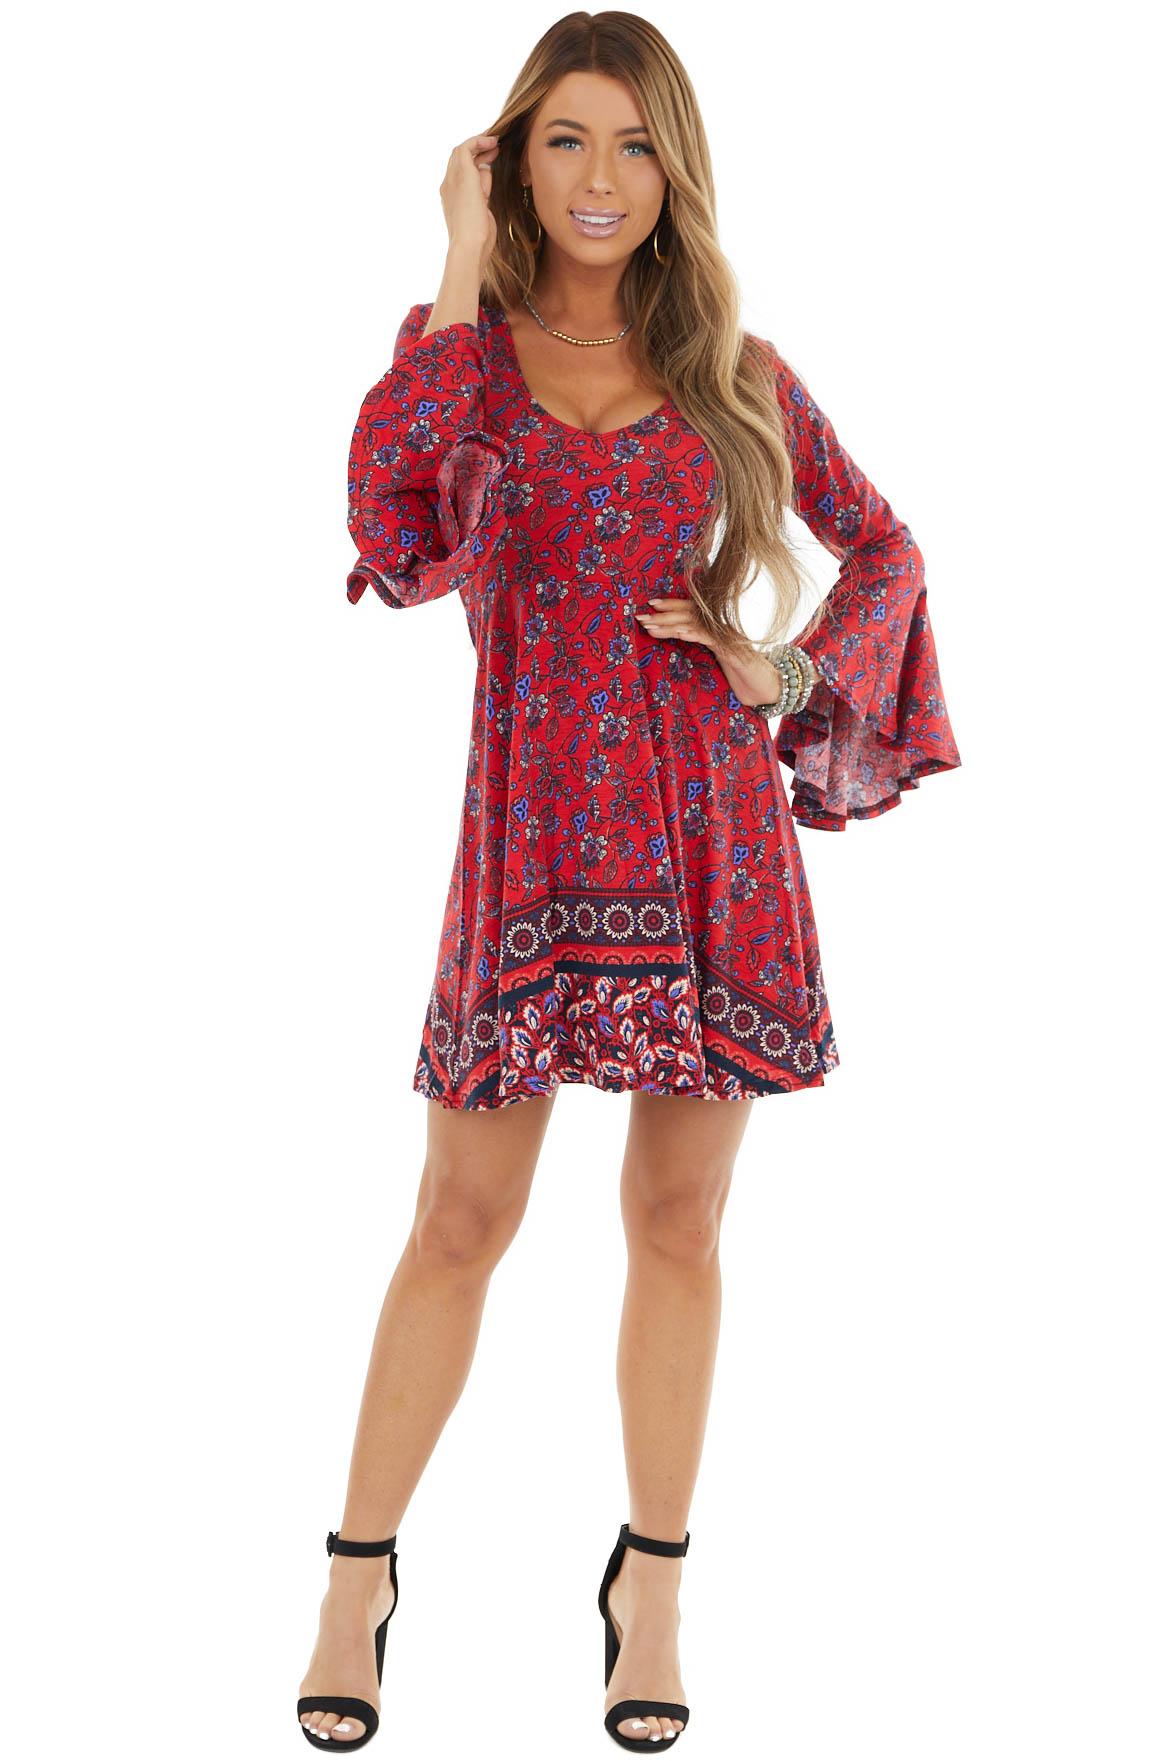 Cranberry and Periwinkle Baby Doll Dress with Ruffle Sleeve